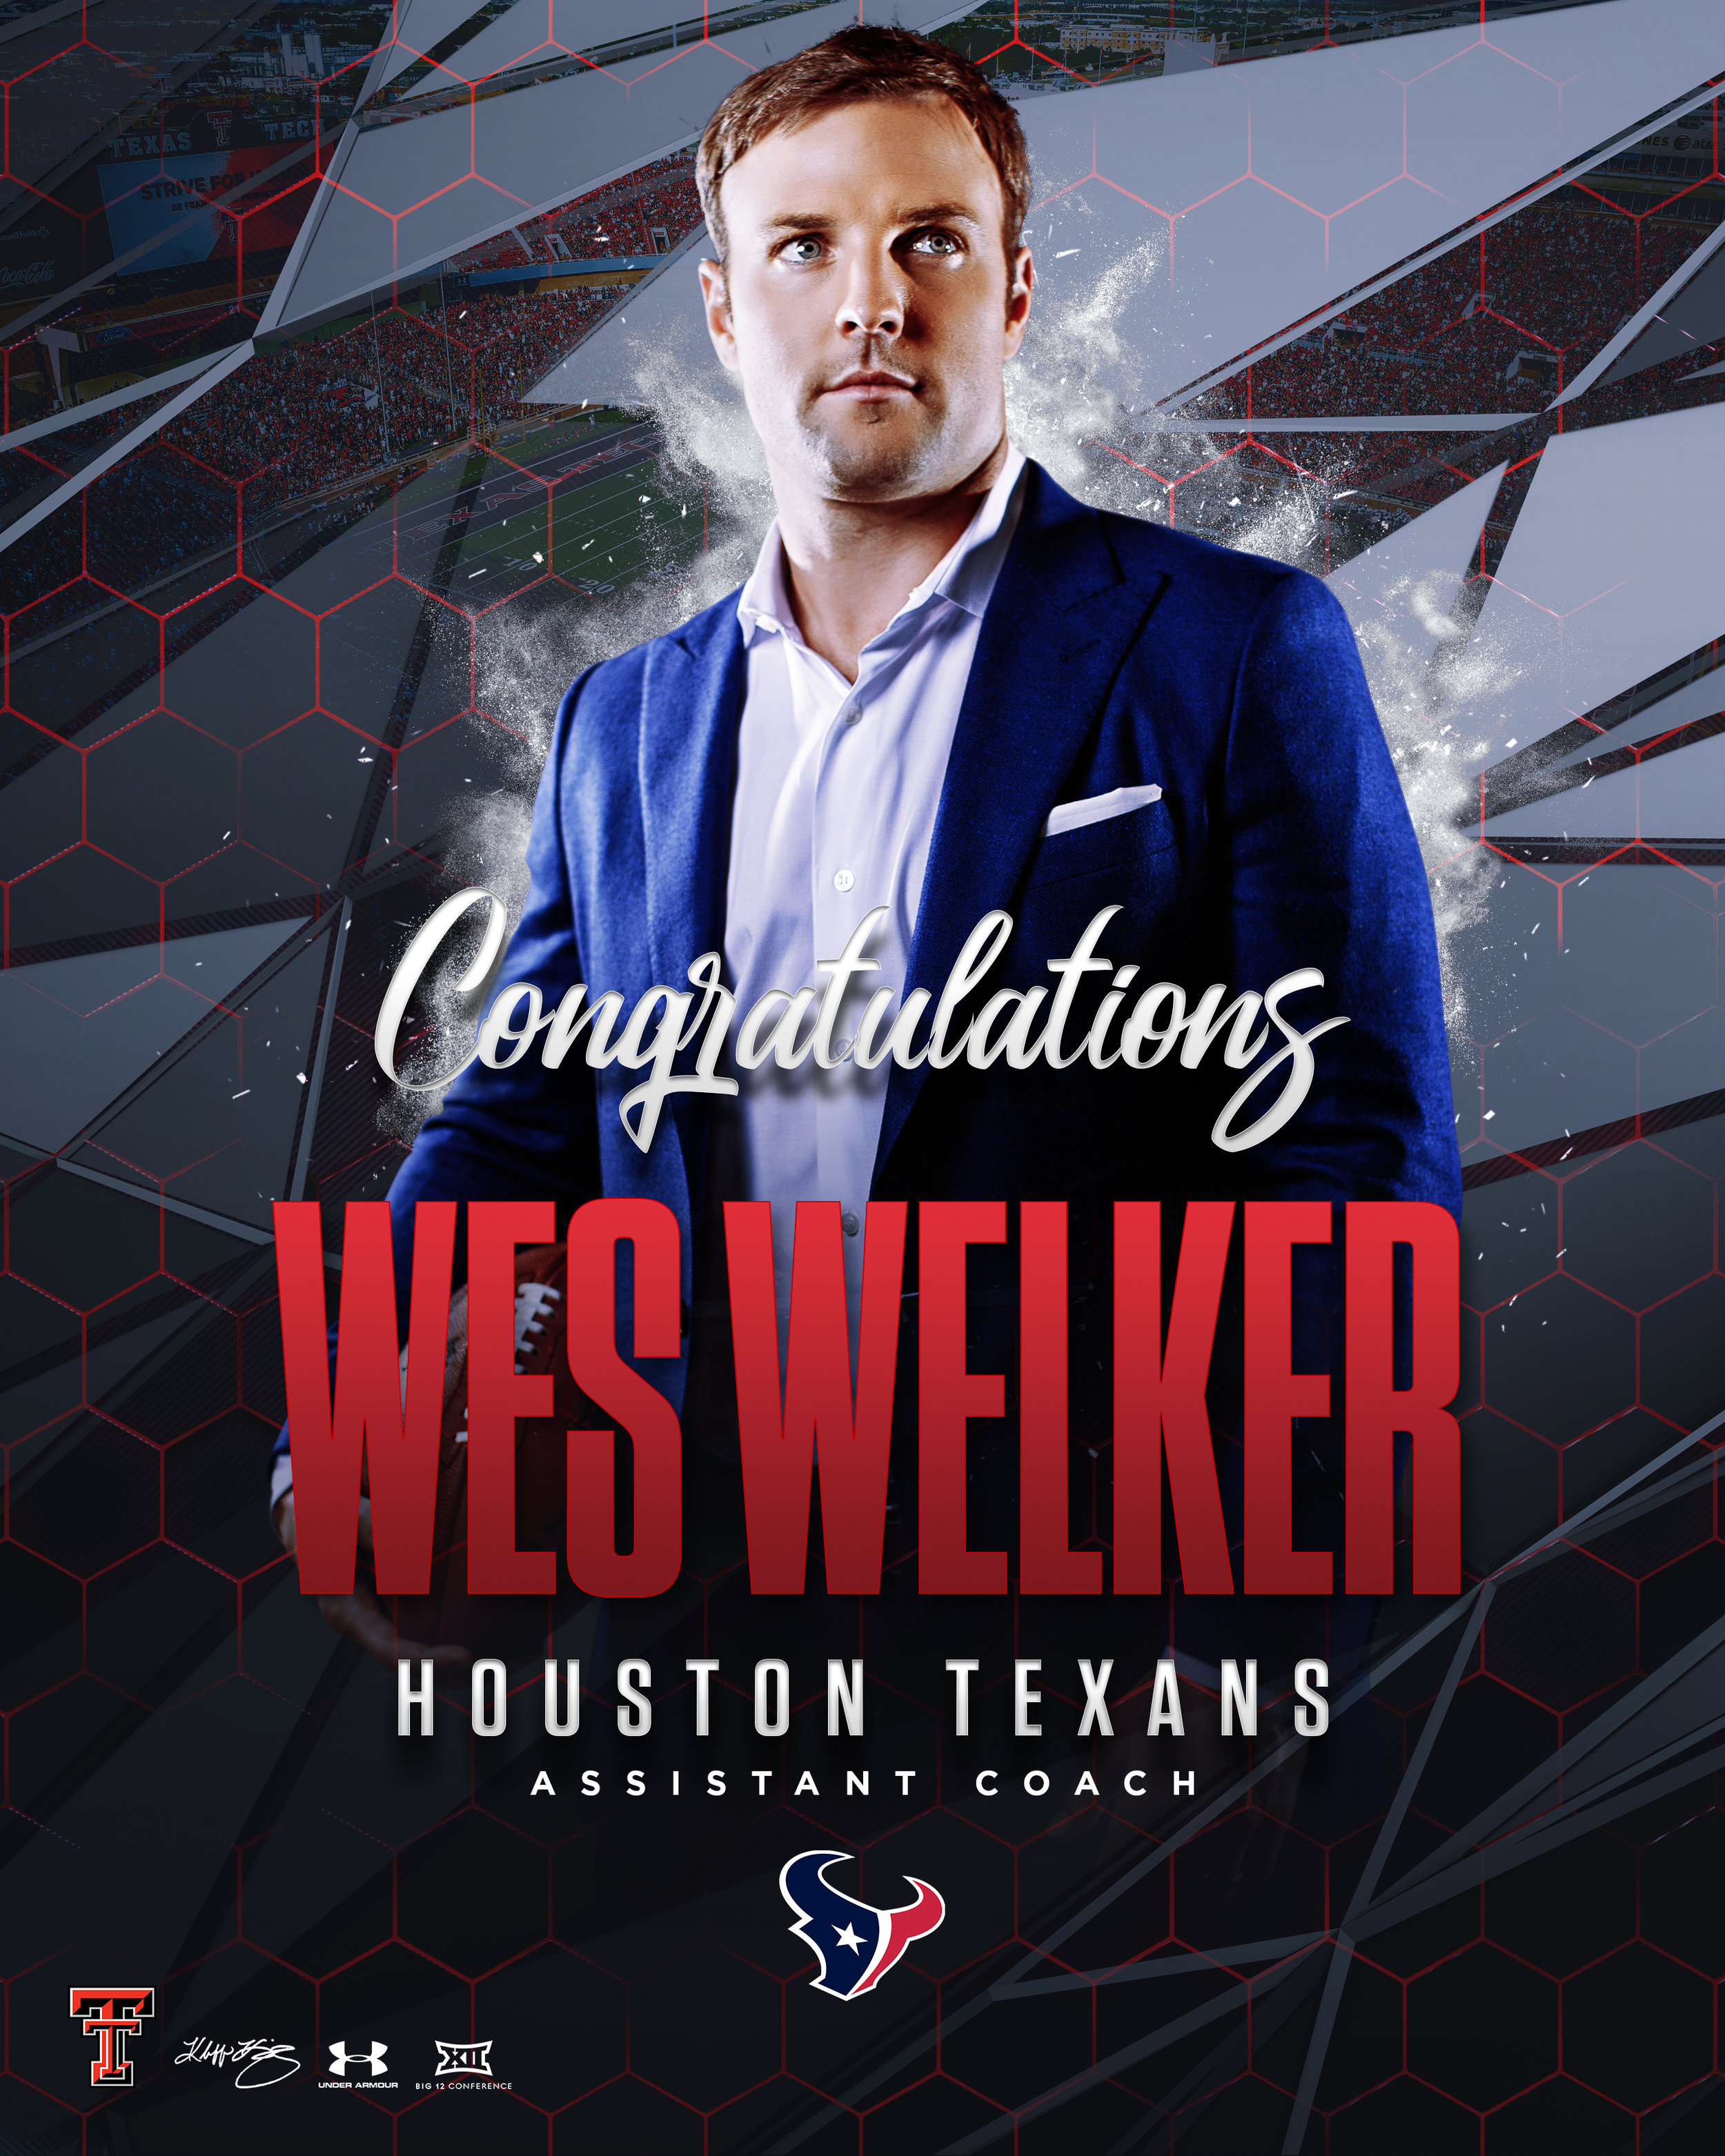 TTU Wes Welker Houston Texans Assistant Coach